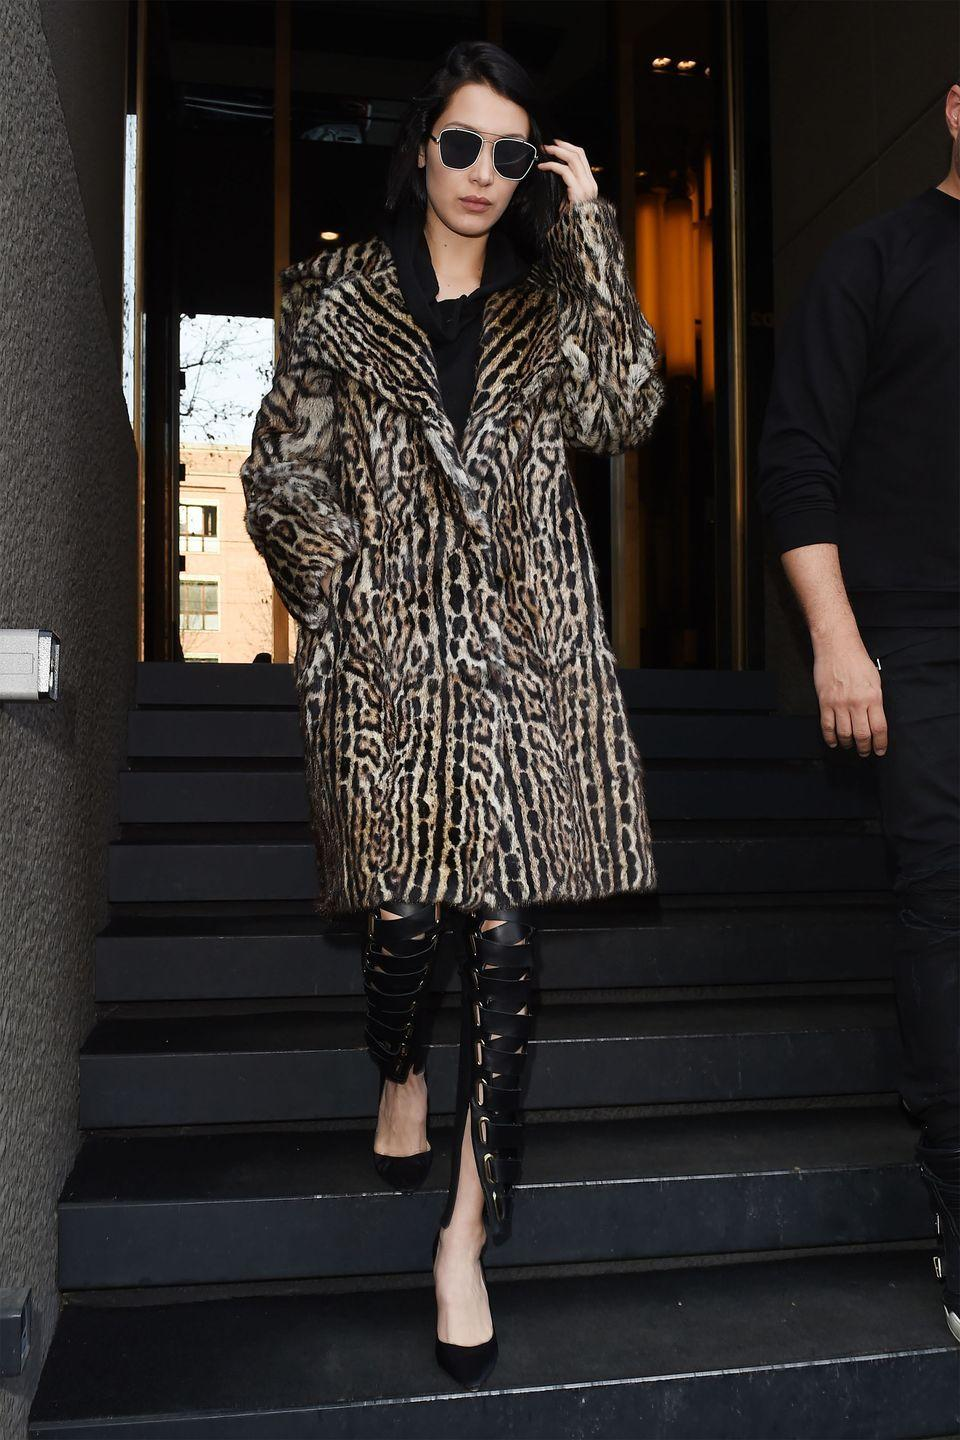 <p>In a leopard Lilly e Violetta coat, hoodie, lace-up leather pants, black pumps and Vera Wang aviator sunglasses while out in Milan.</p>